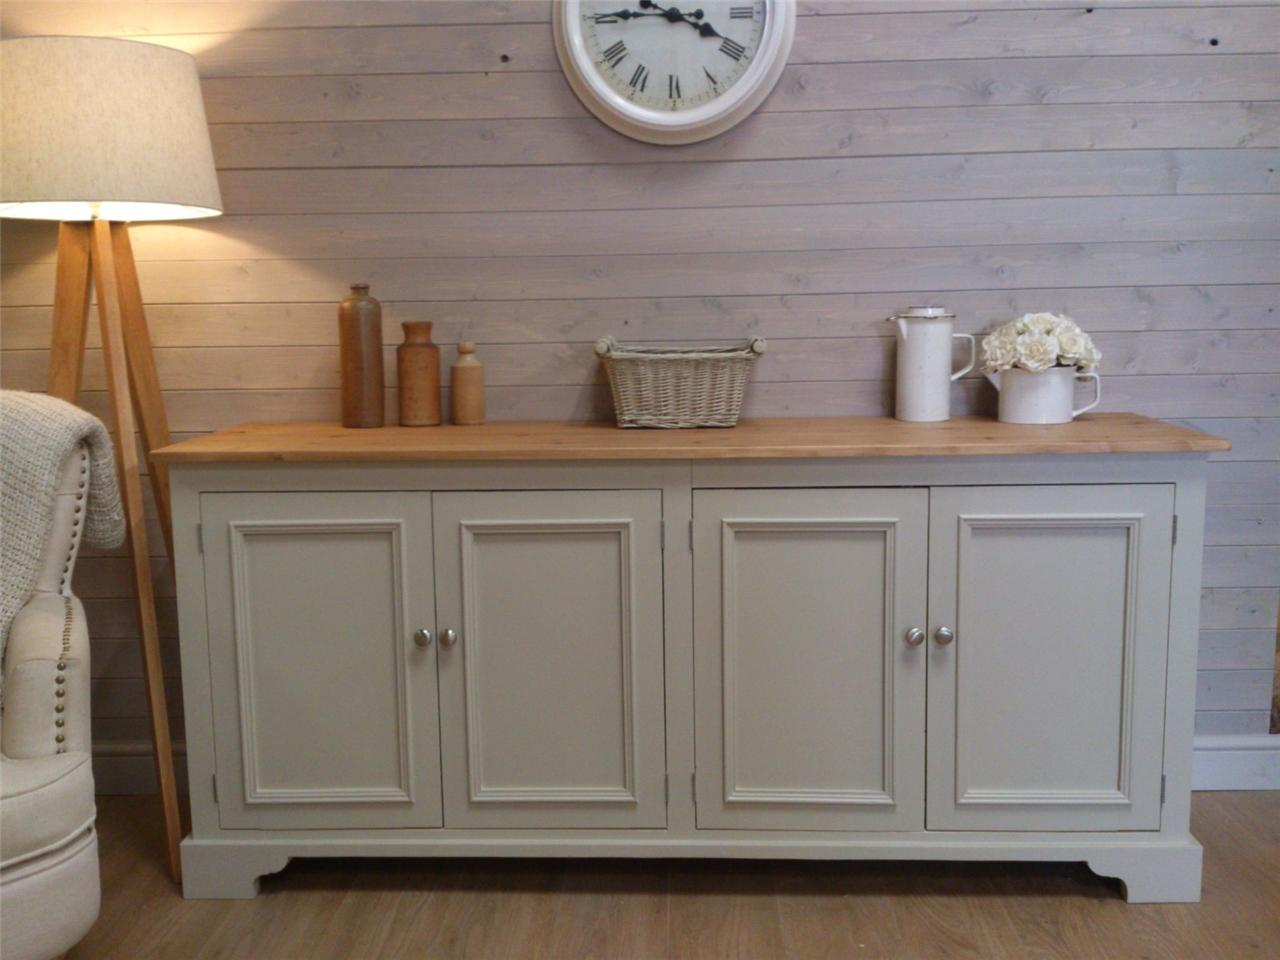 New Huge Solid Pine Sideboard Kitchen Unit Shabby Chic